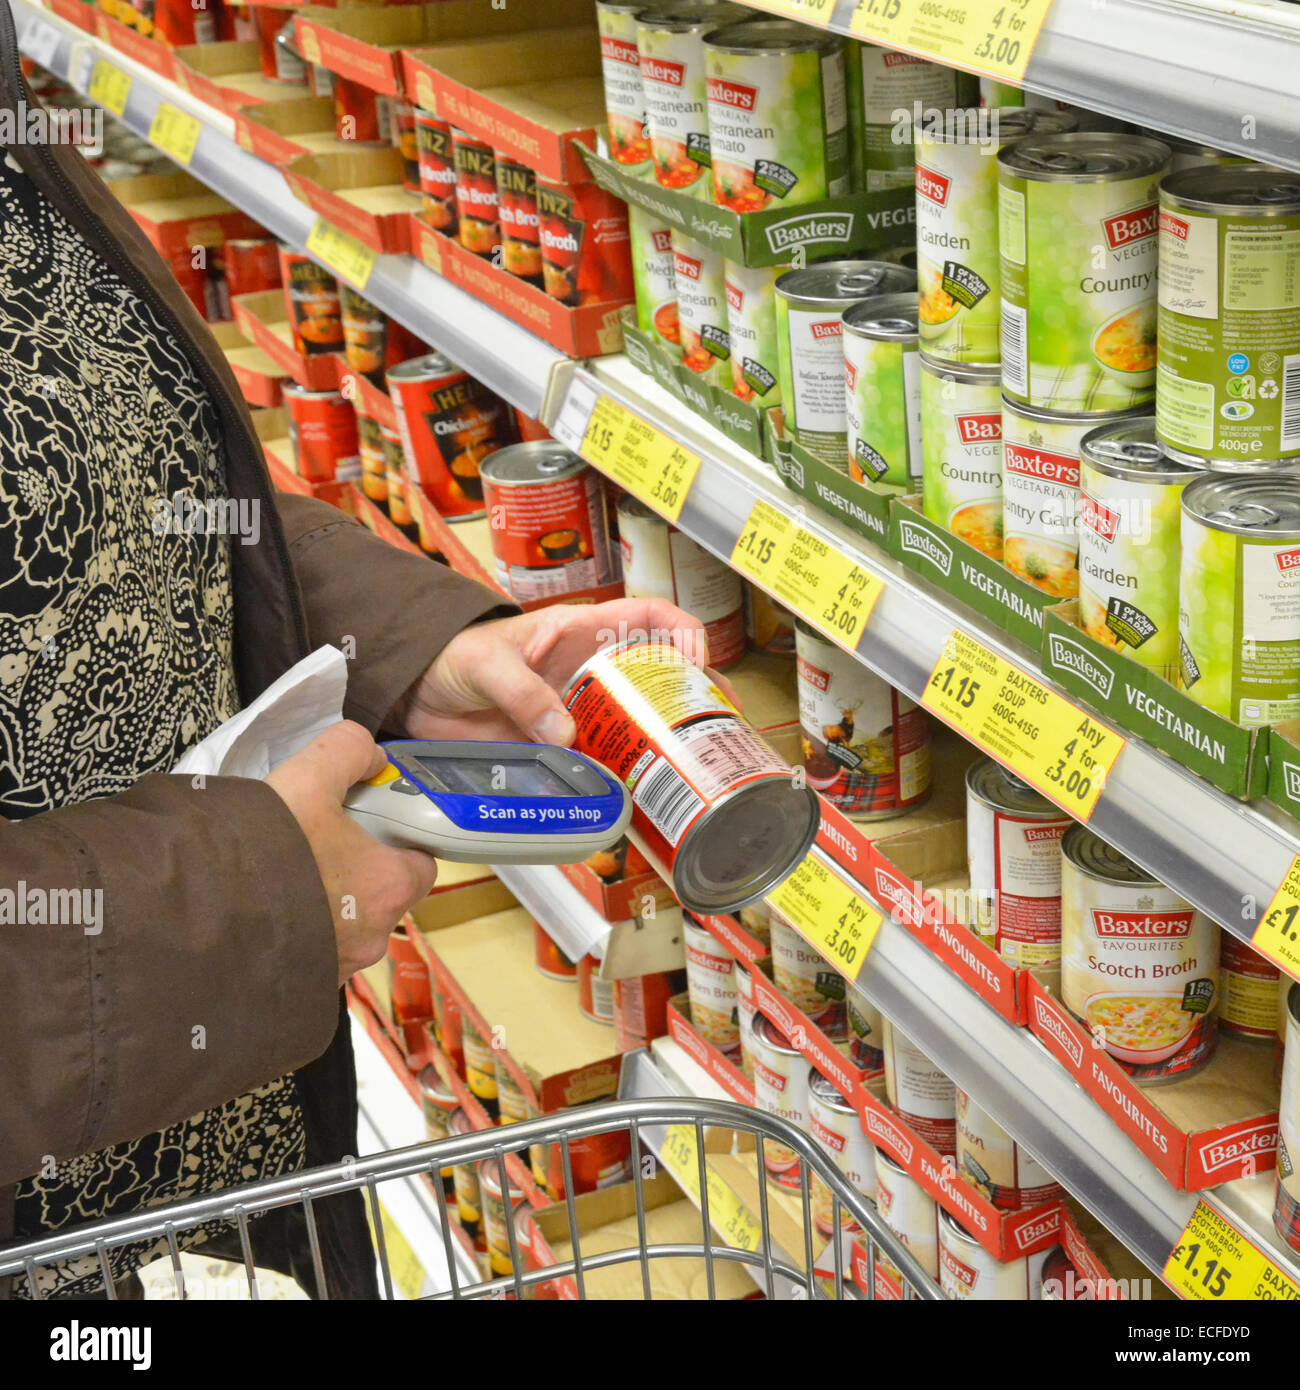 Tesco supermarket shopper using handheld scan as you shop device to record purchases on digital display for downloading - Stock Image